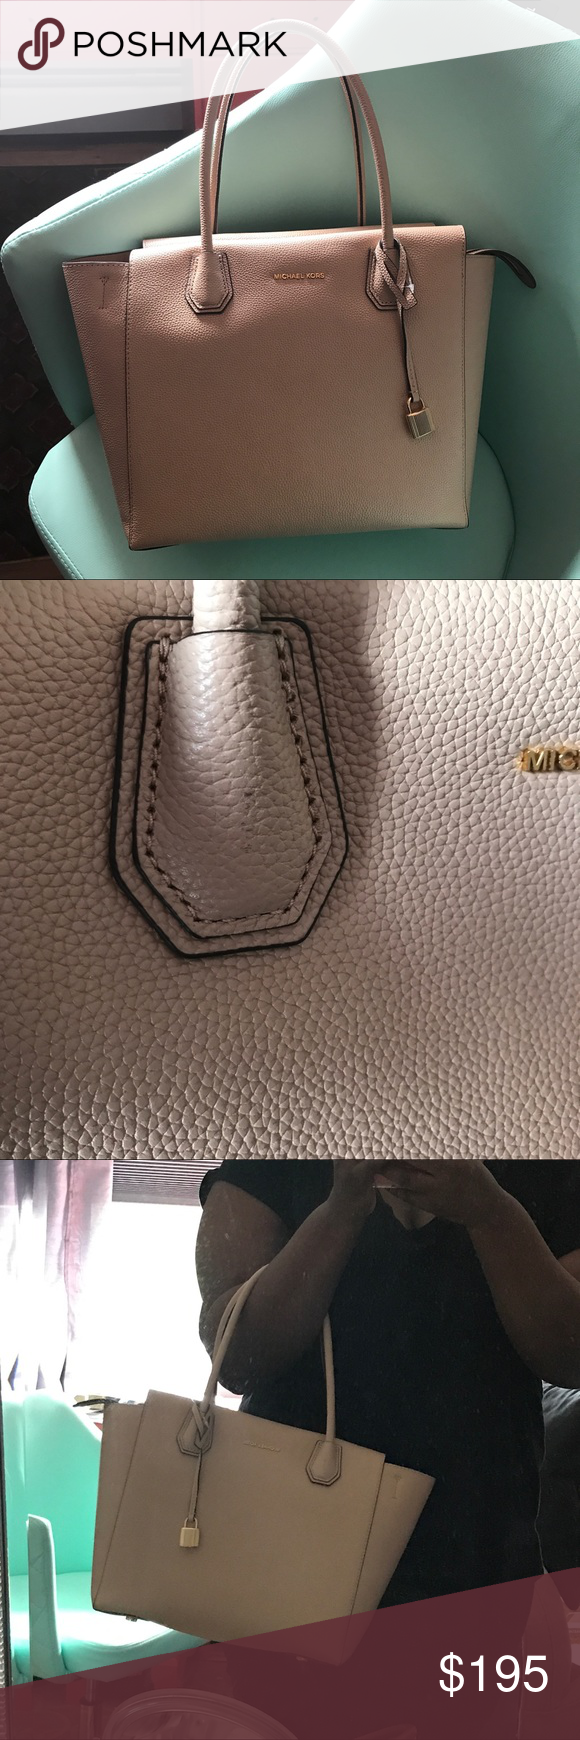 Reduced Kors Oyster Mercer Large Leather Satchel 100 Authentic Michael Selma Saffiano Coklat Has A Slight